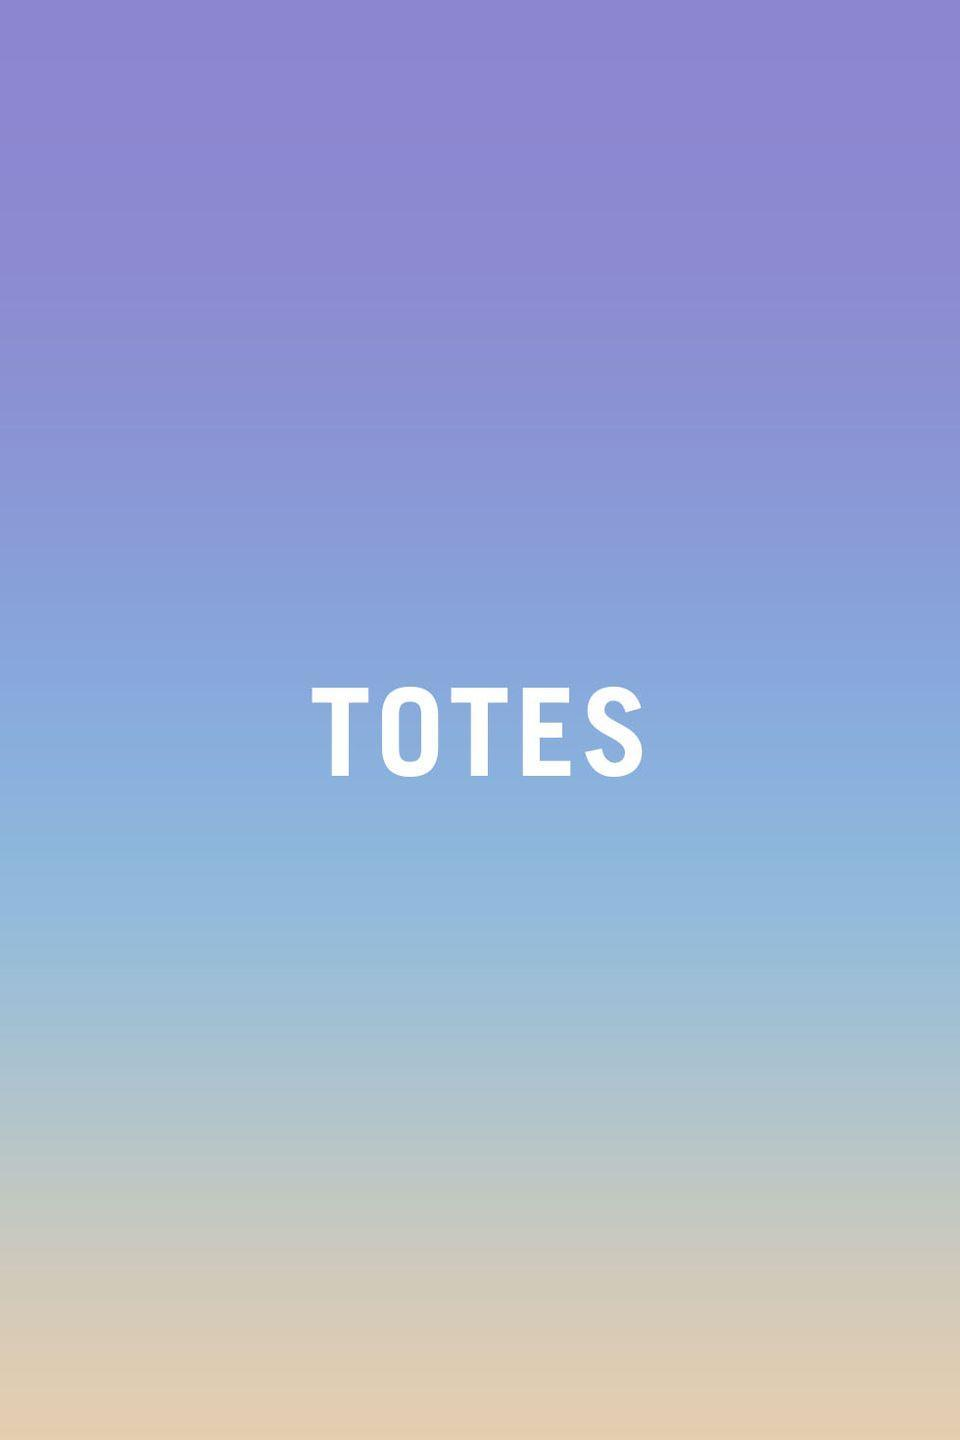 <p>Totes is teen-girl shorthand for totally — which means that by its very nature it's impossible for adults to say without sounding silly. It also <i>is</i> silly. Just say the whole word! See also: adorbs, gorg, probs, and whatevs. </p>